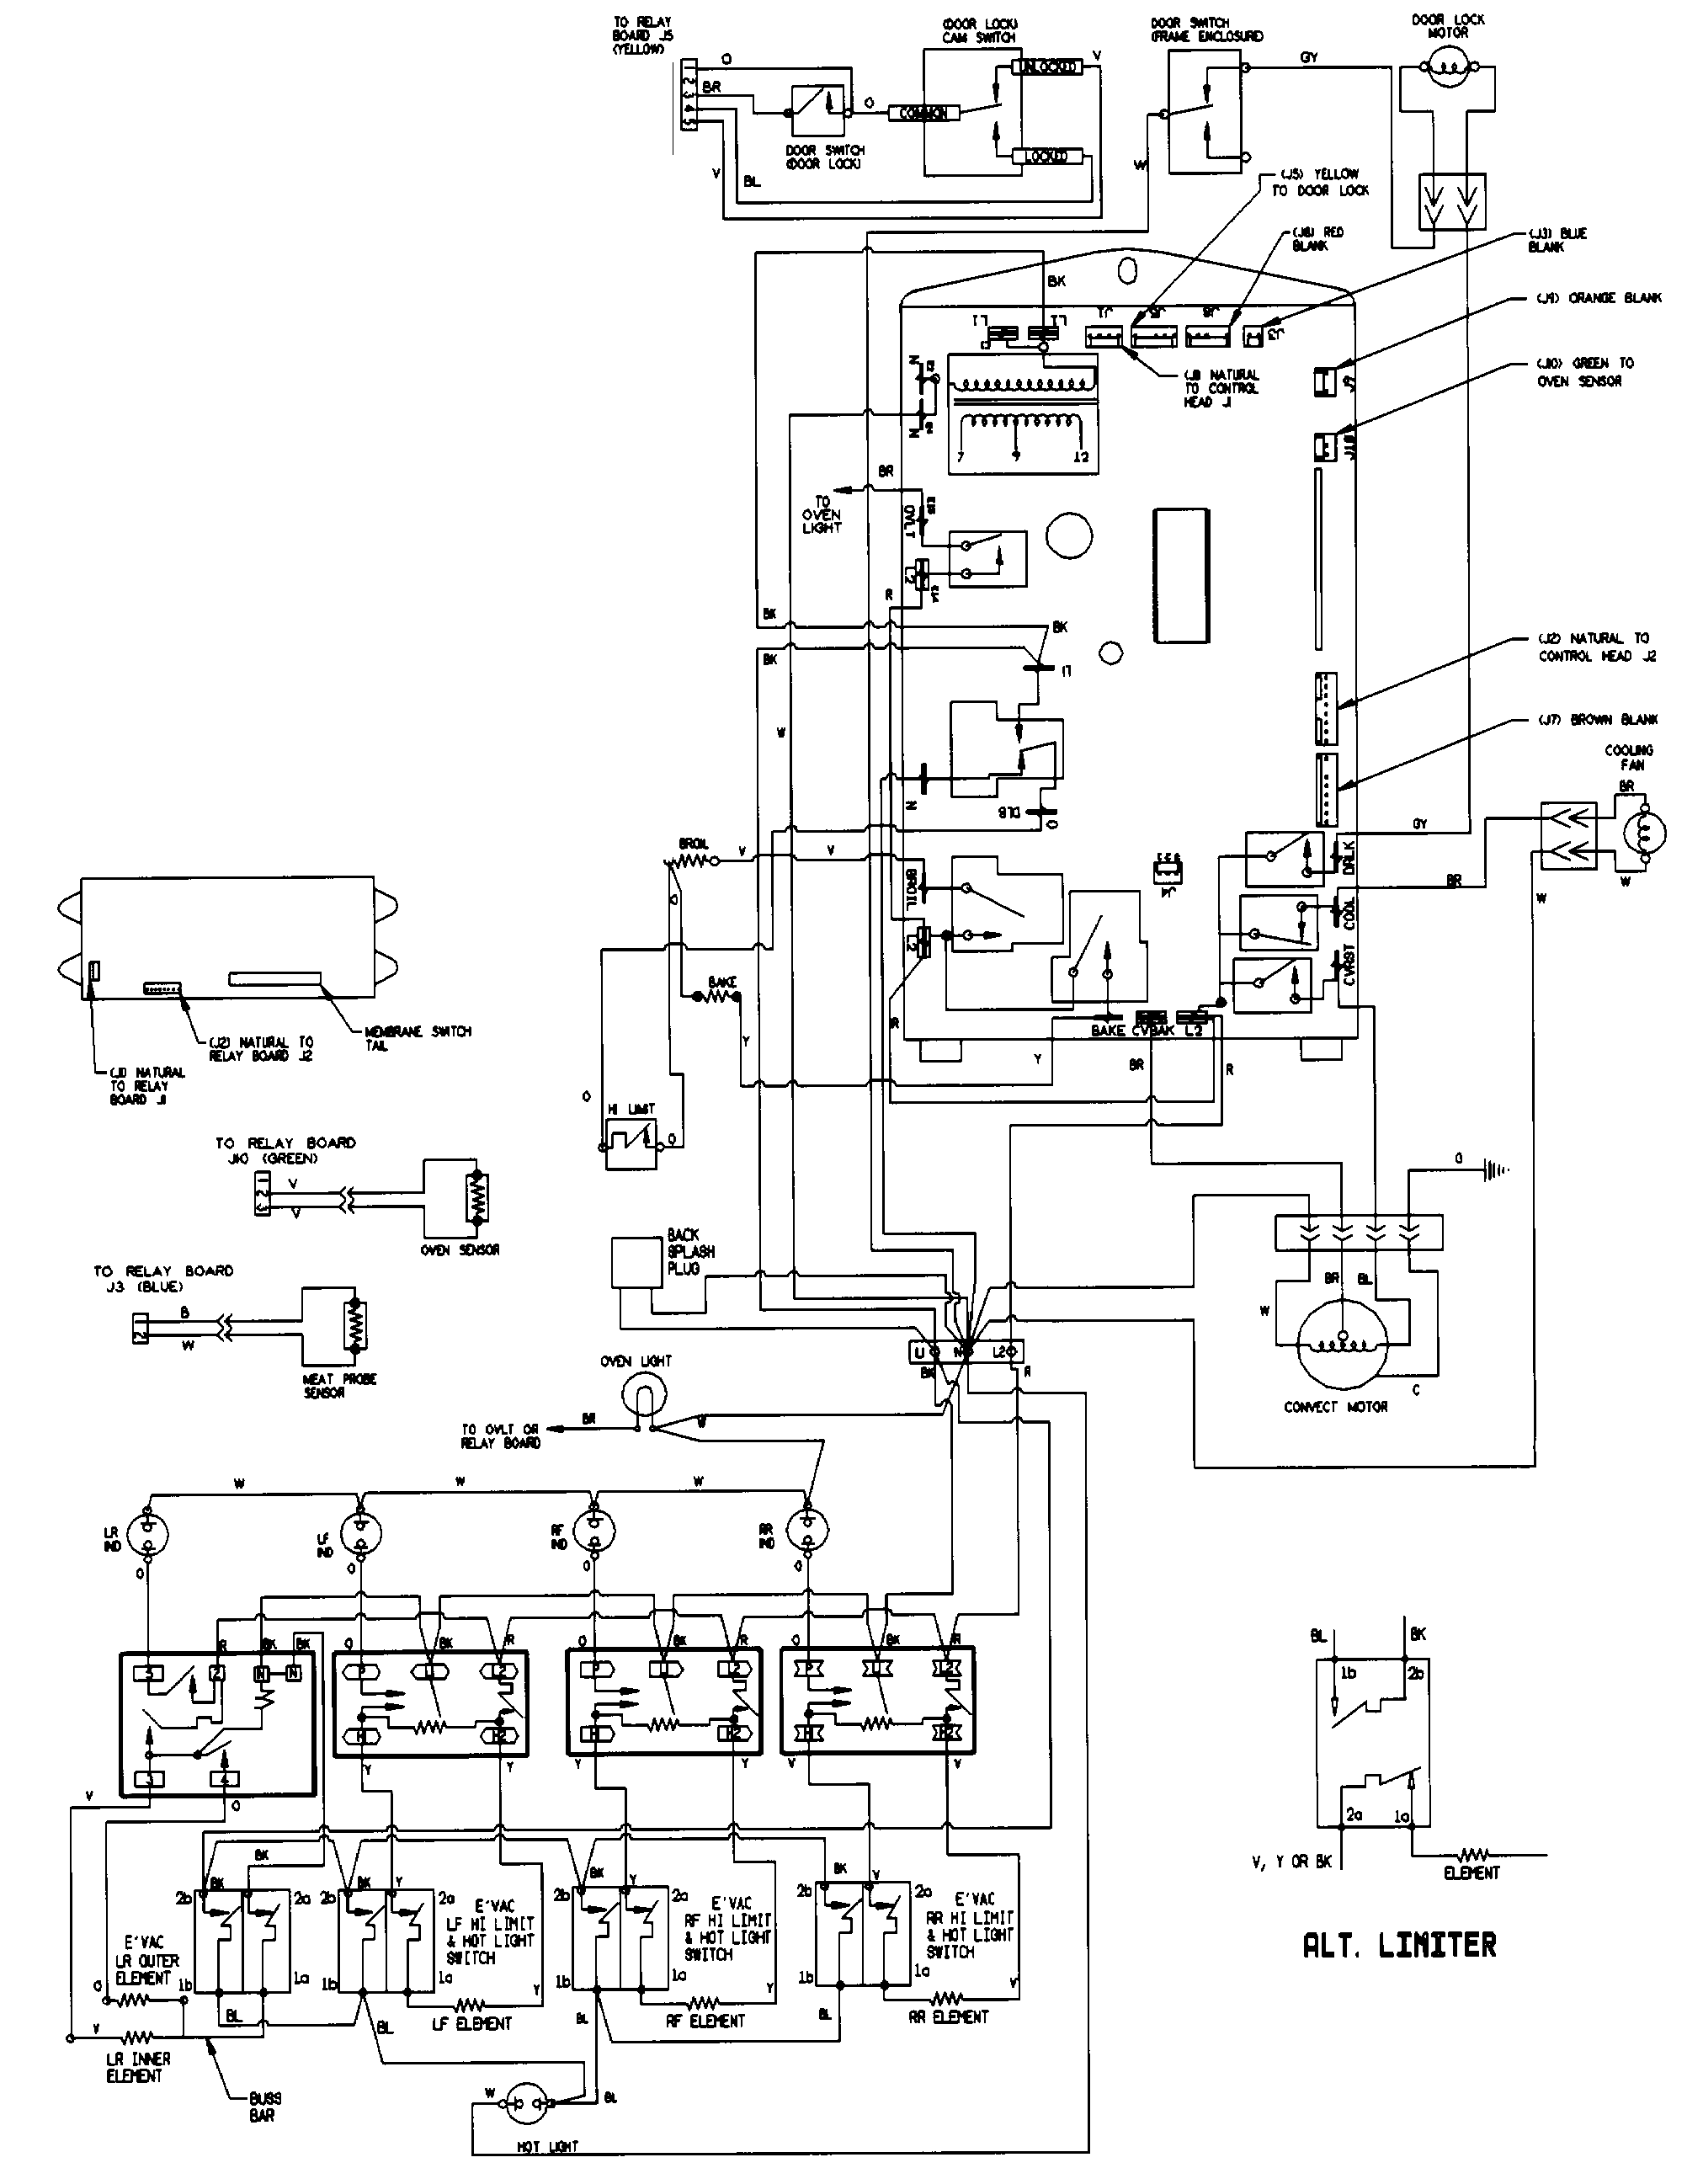 Jenn Air Range Wiring Diagram | Wiring Liry A Whirlpool Dryer Wiring Diagram For on